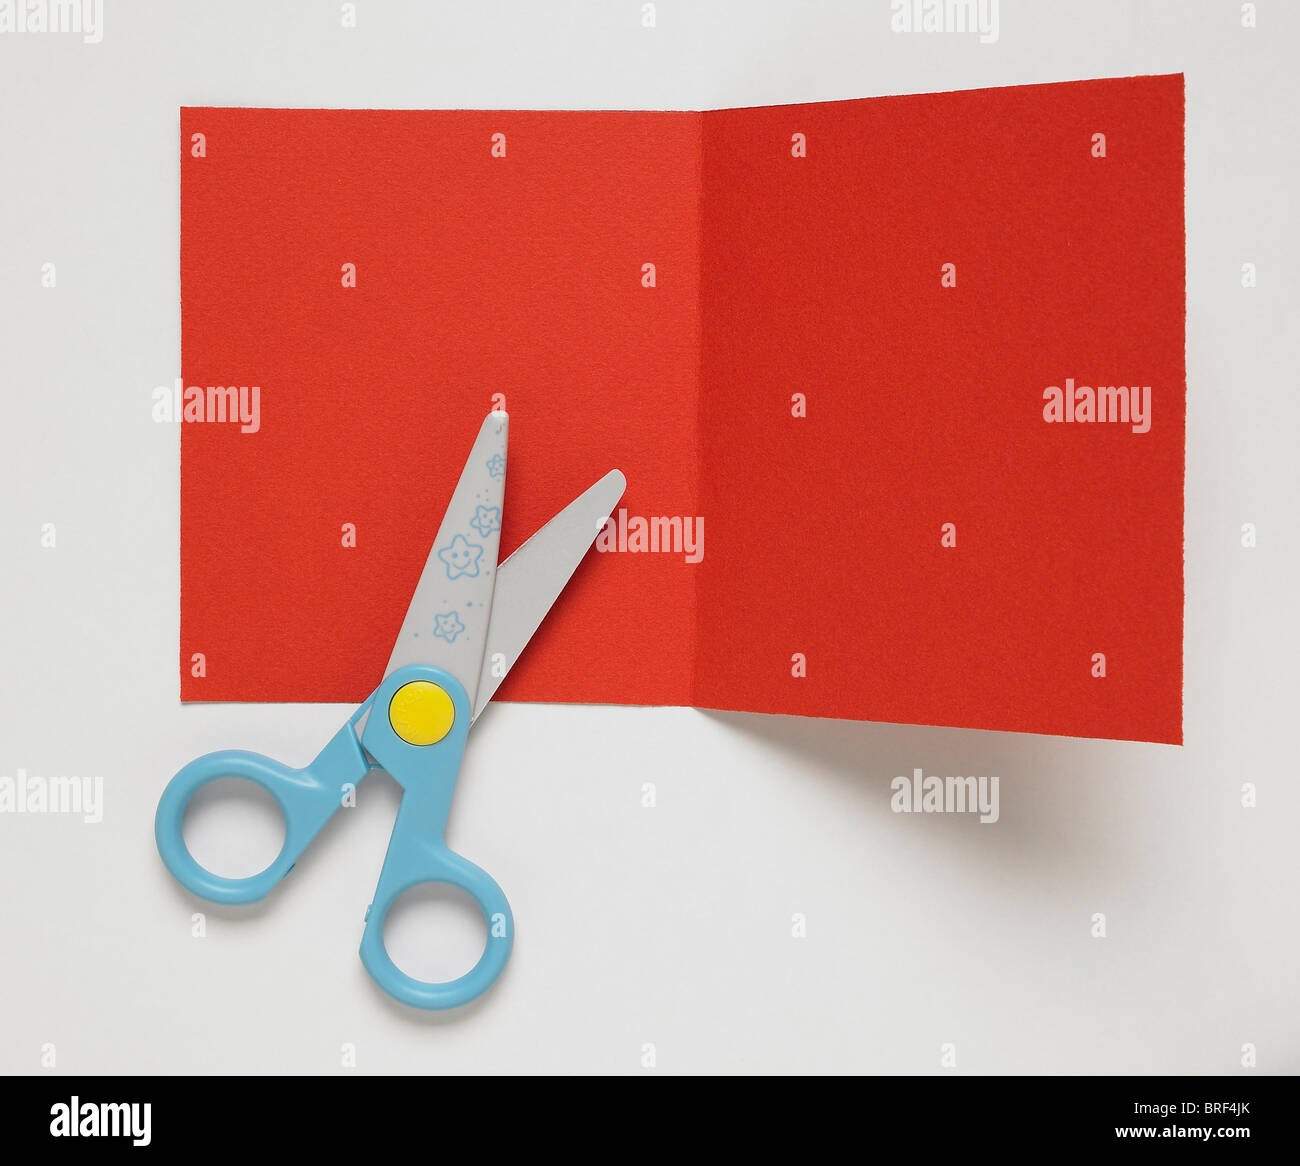 Sheet of red card with crease folded along centre, blue handled scissors - Stock Image